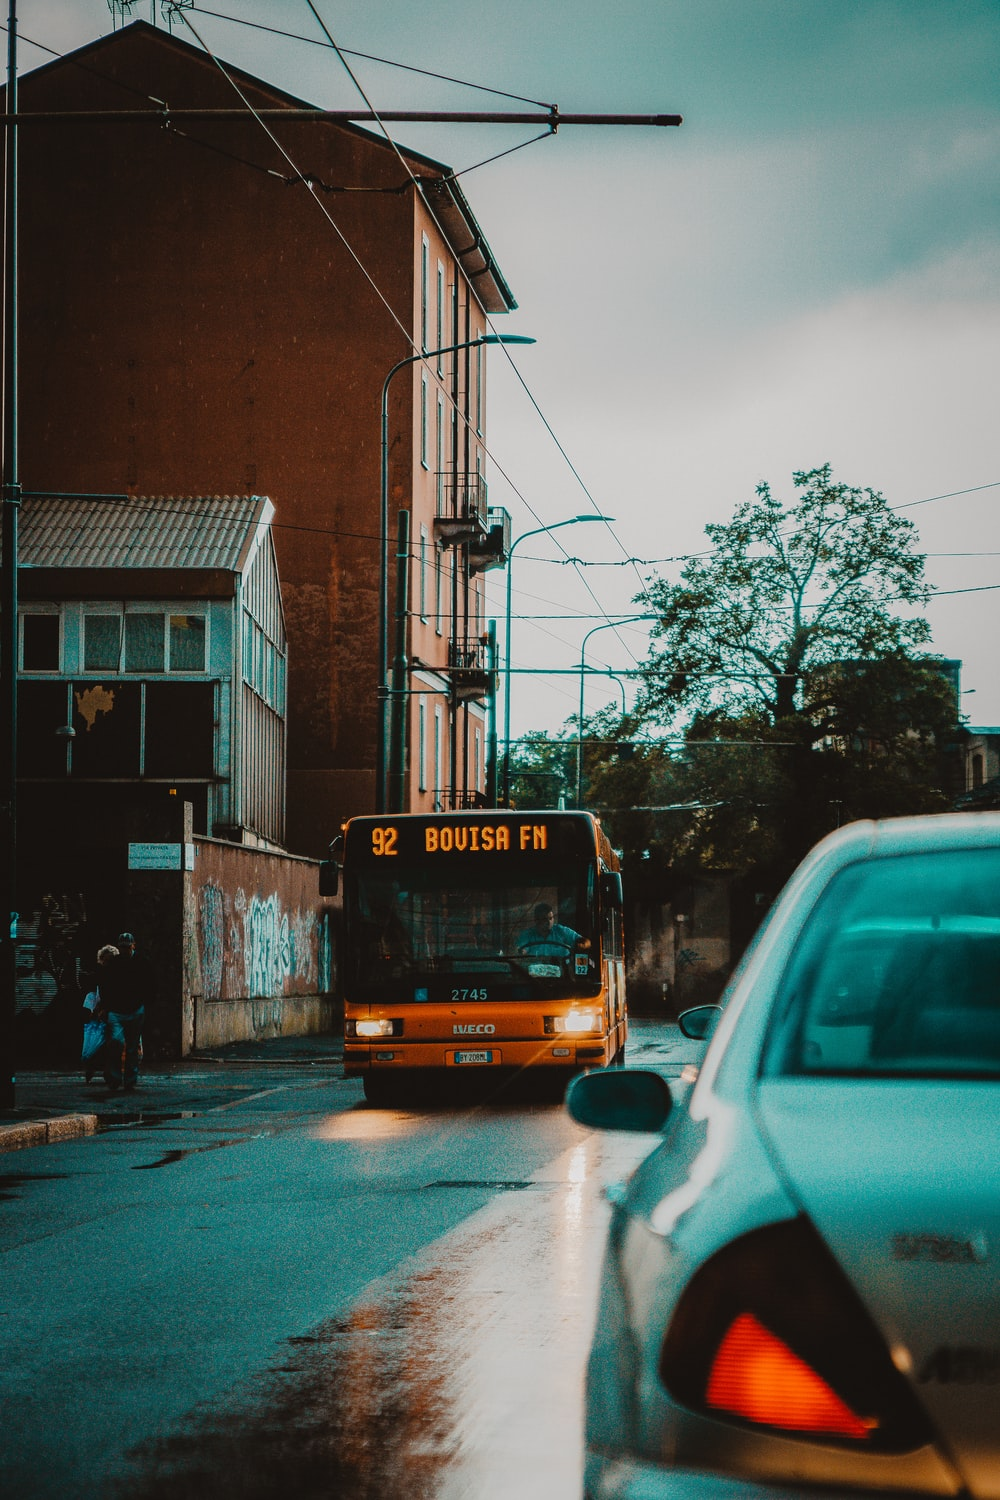 orange bus in road during daytime close-up photography